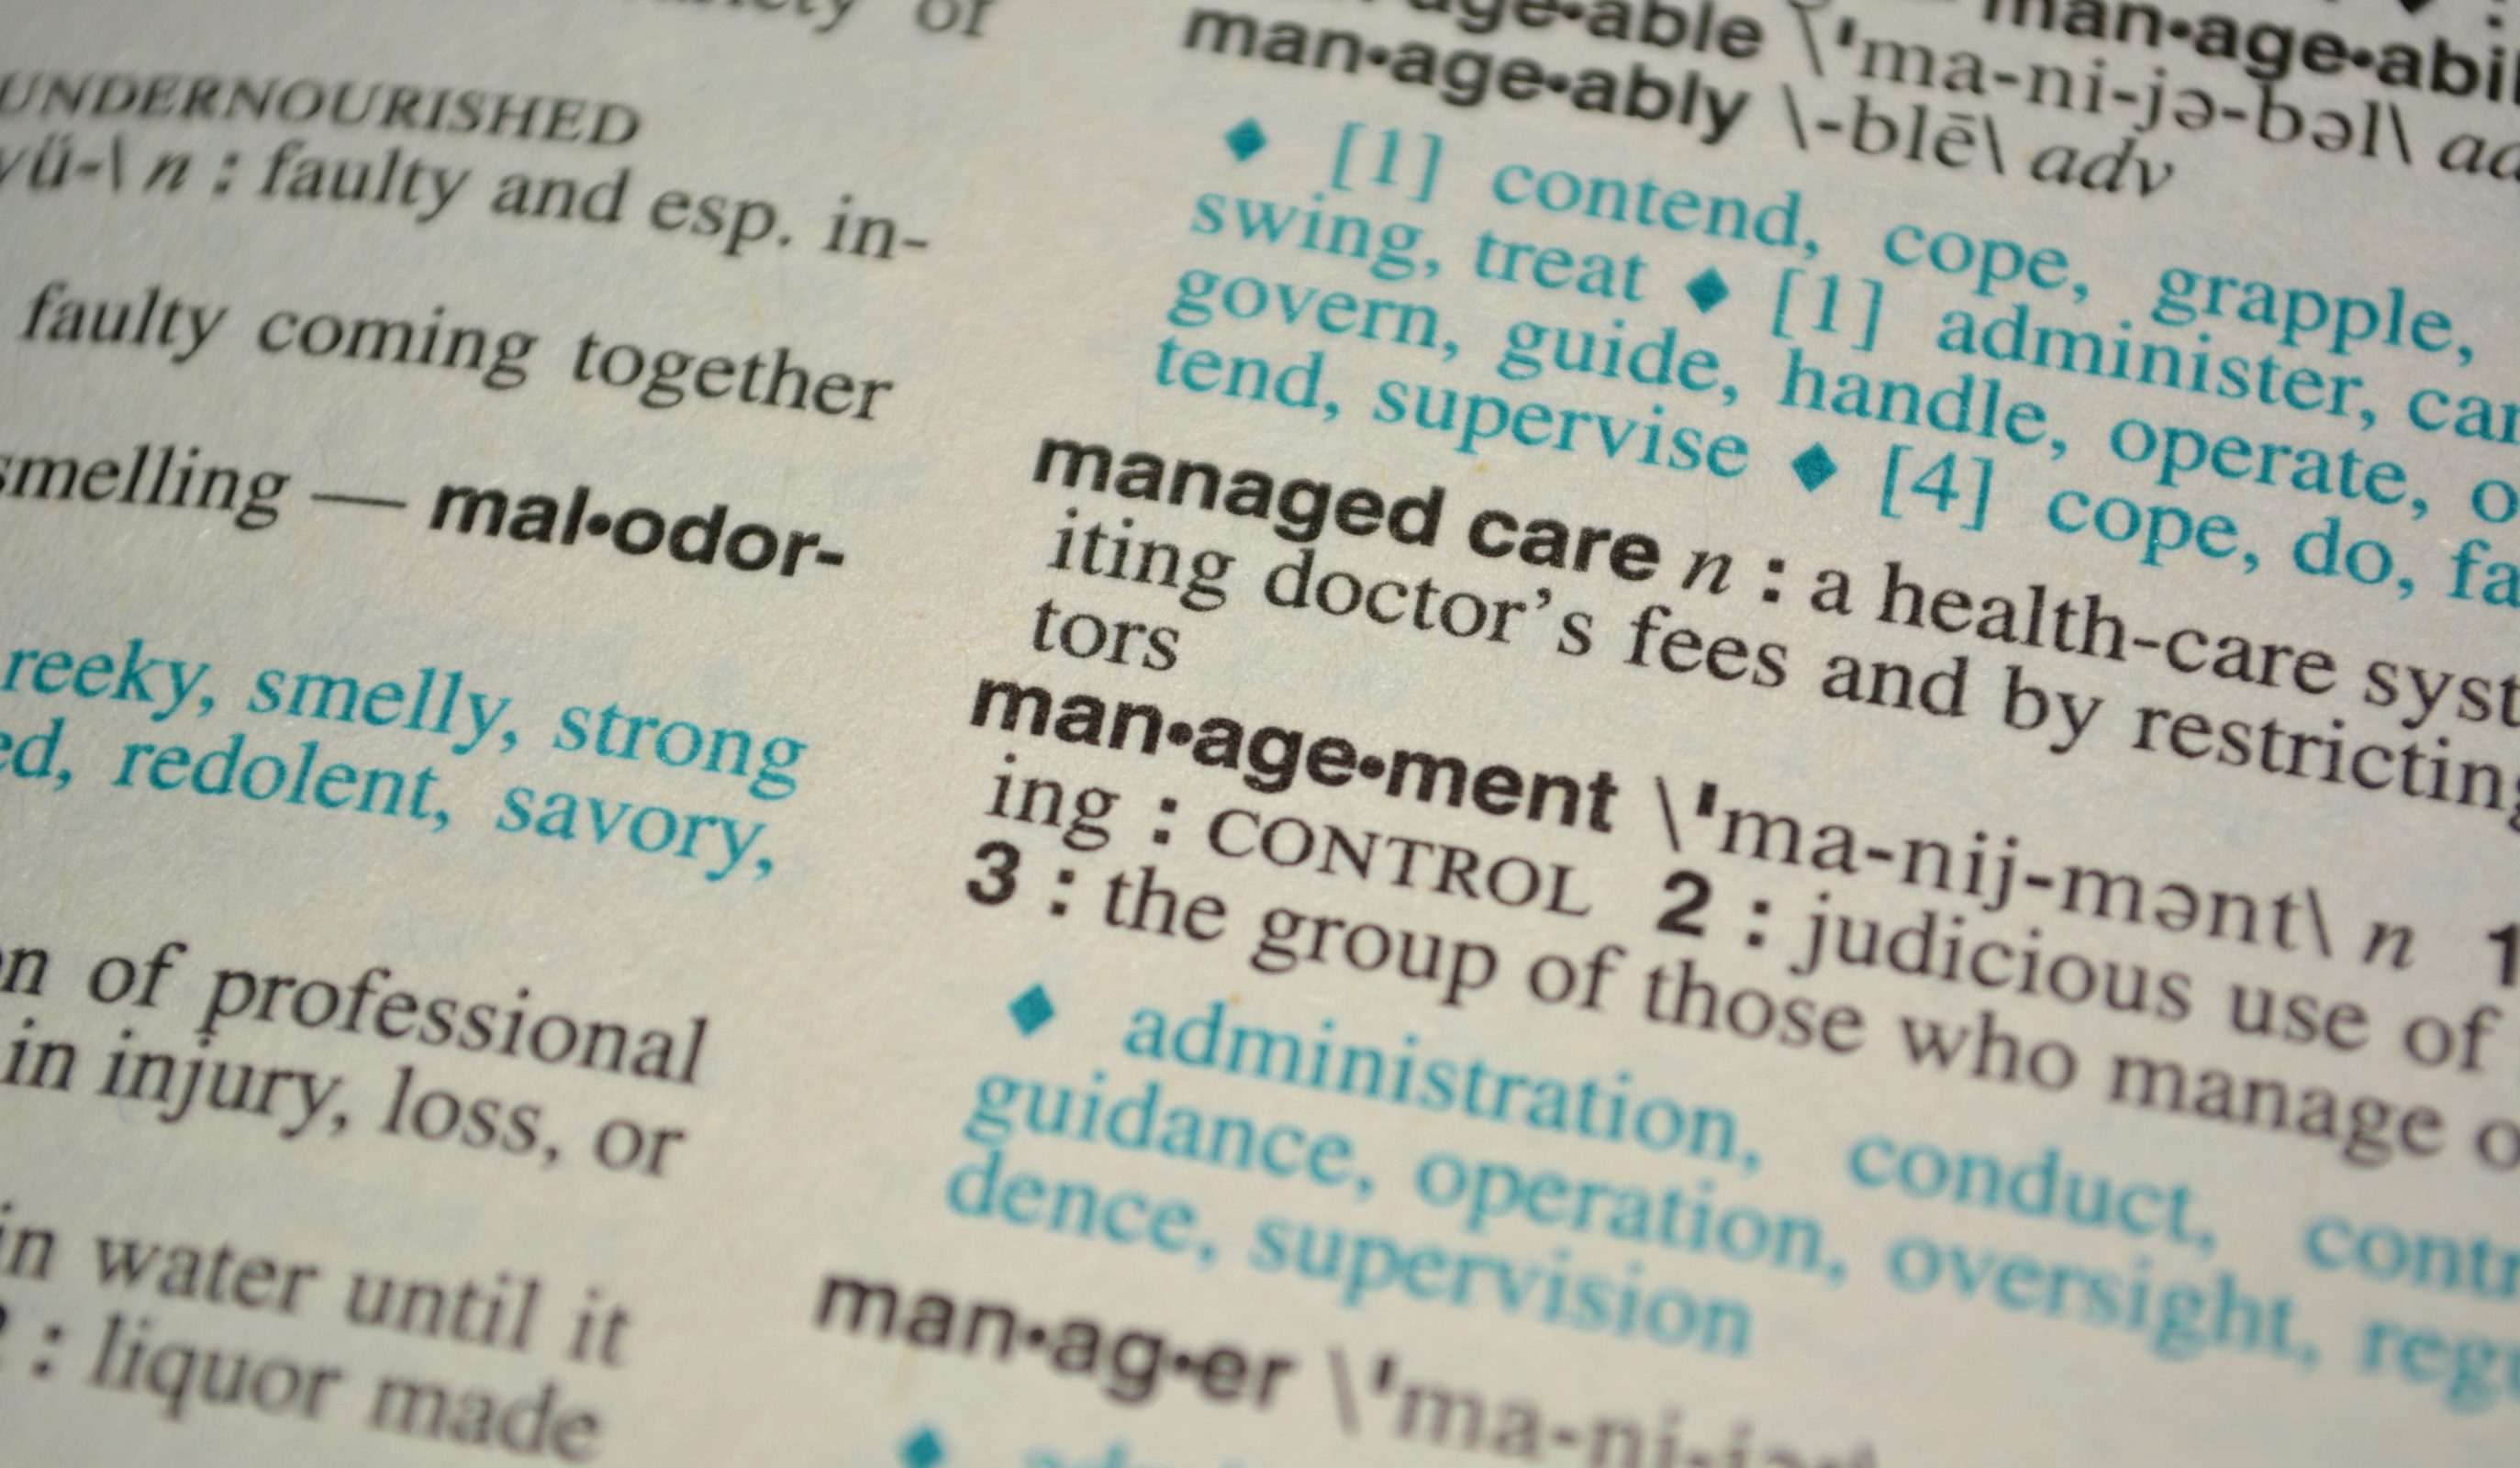 Managed Care IDD Special Needs